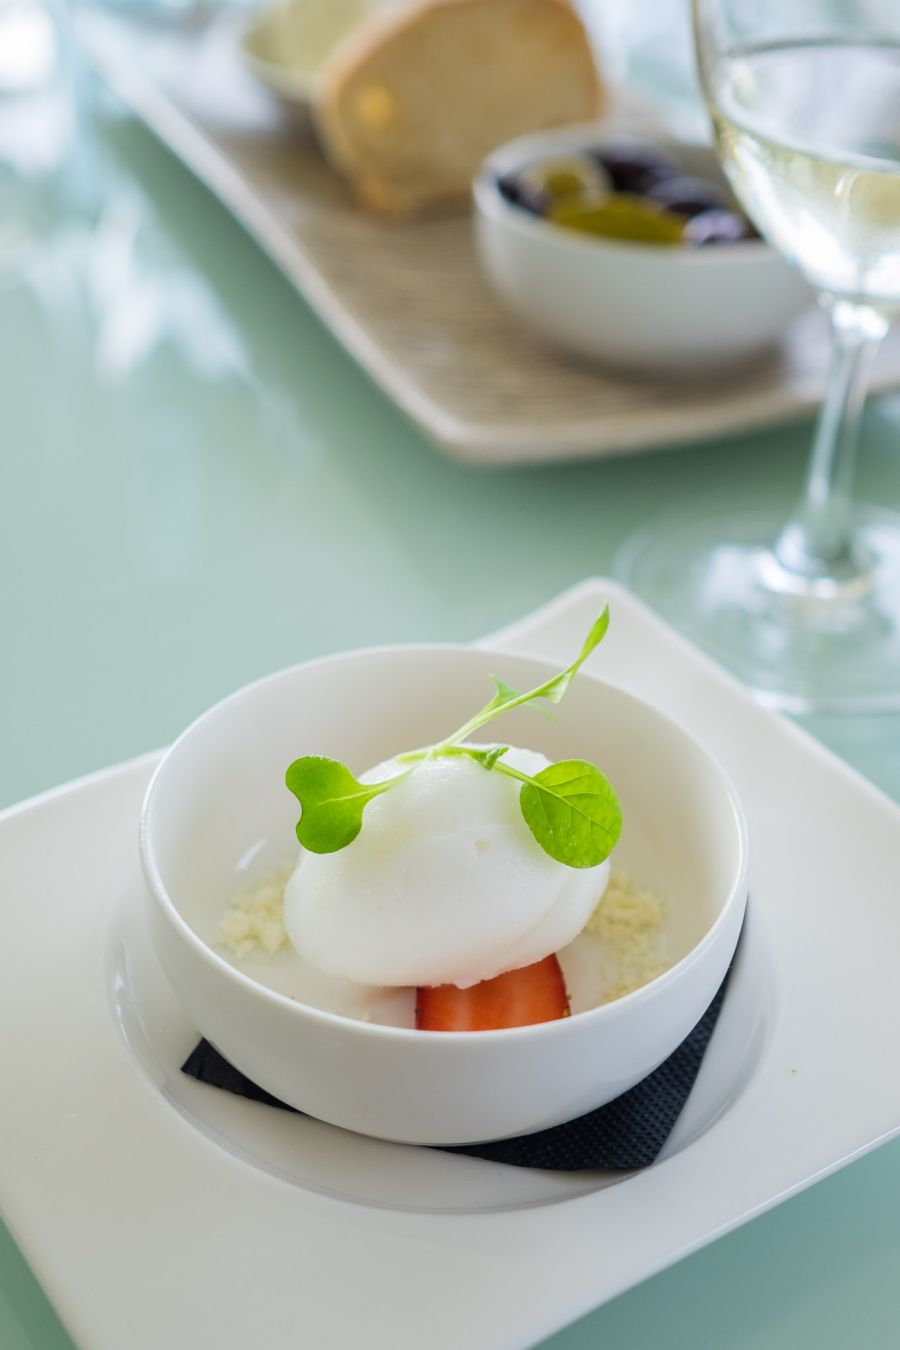 Palate cleanser: lemon sorbet with citrus sherbet and fresh strawberries